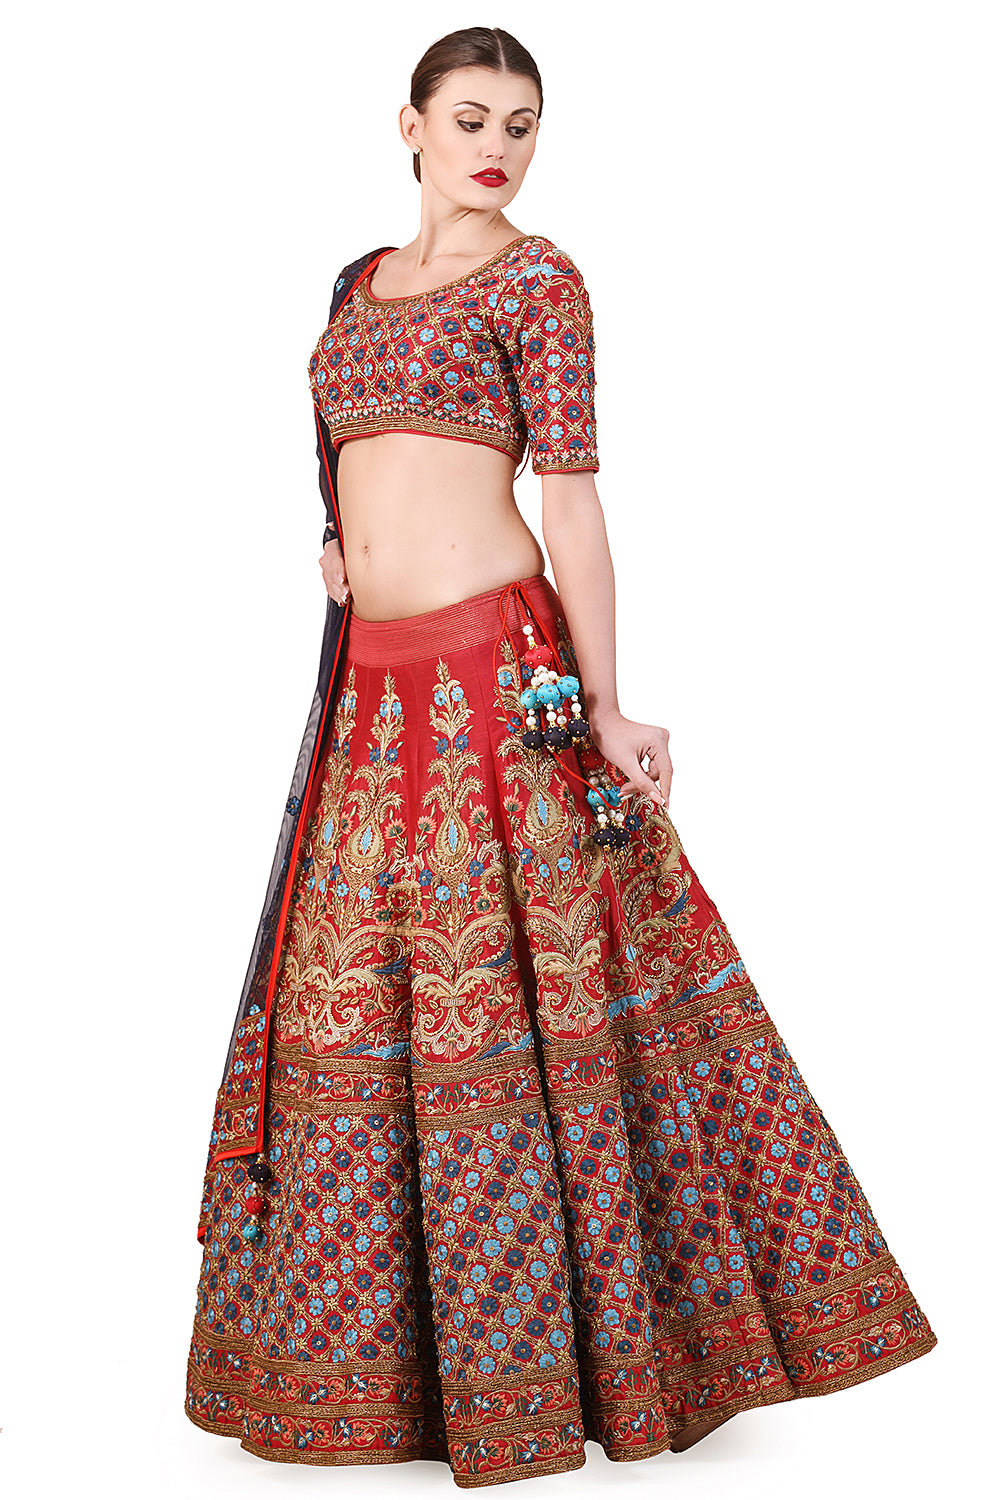 Embroidered Lehenga, blouse & dupatta set - The Grand Trunk